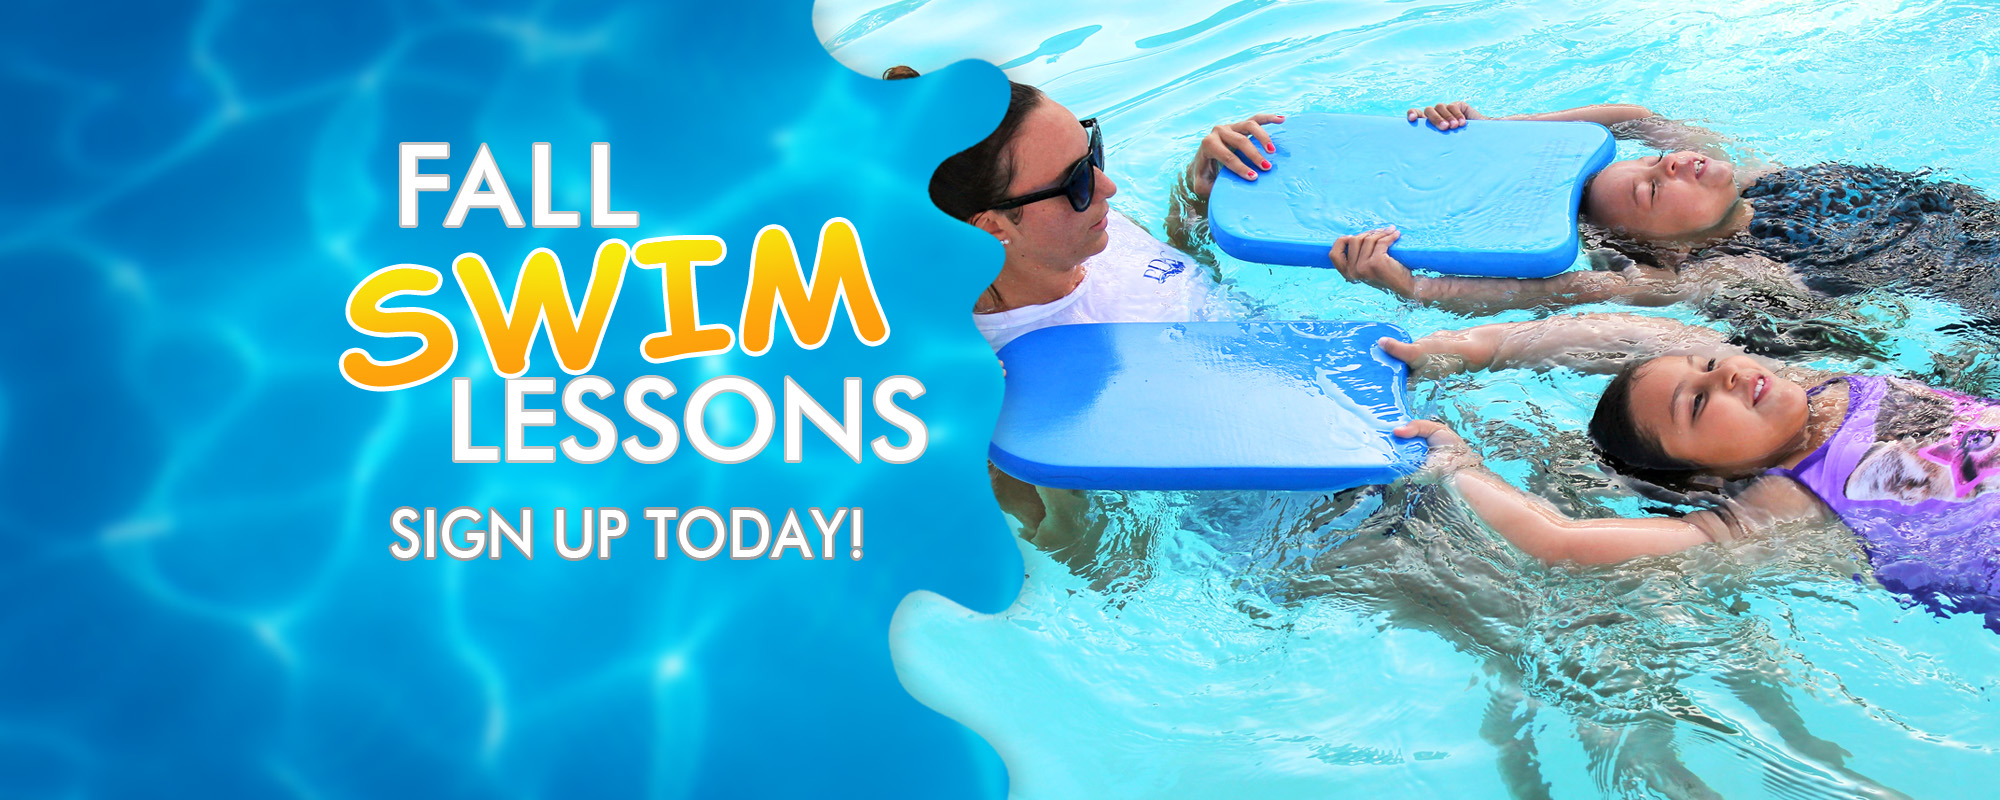 slider_Fall_SwimLessons